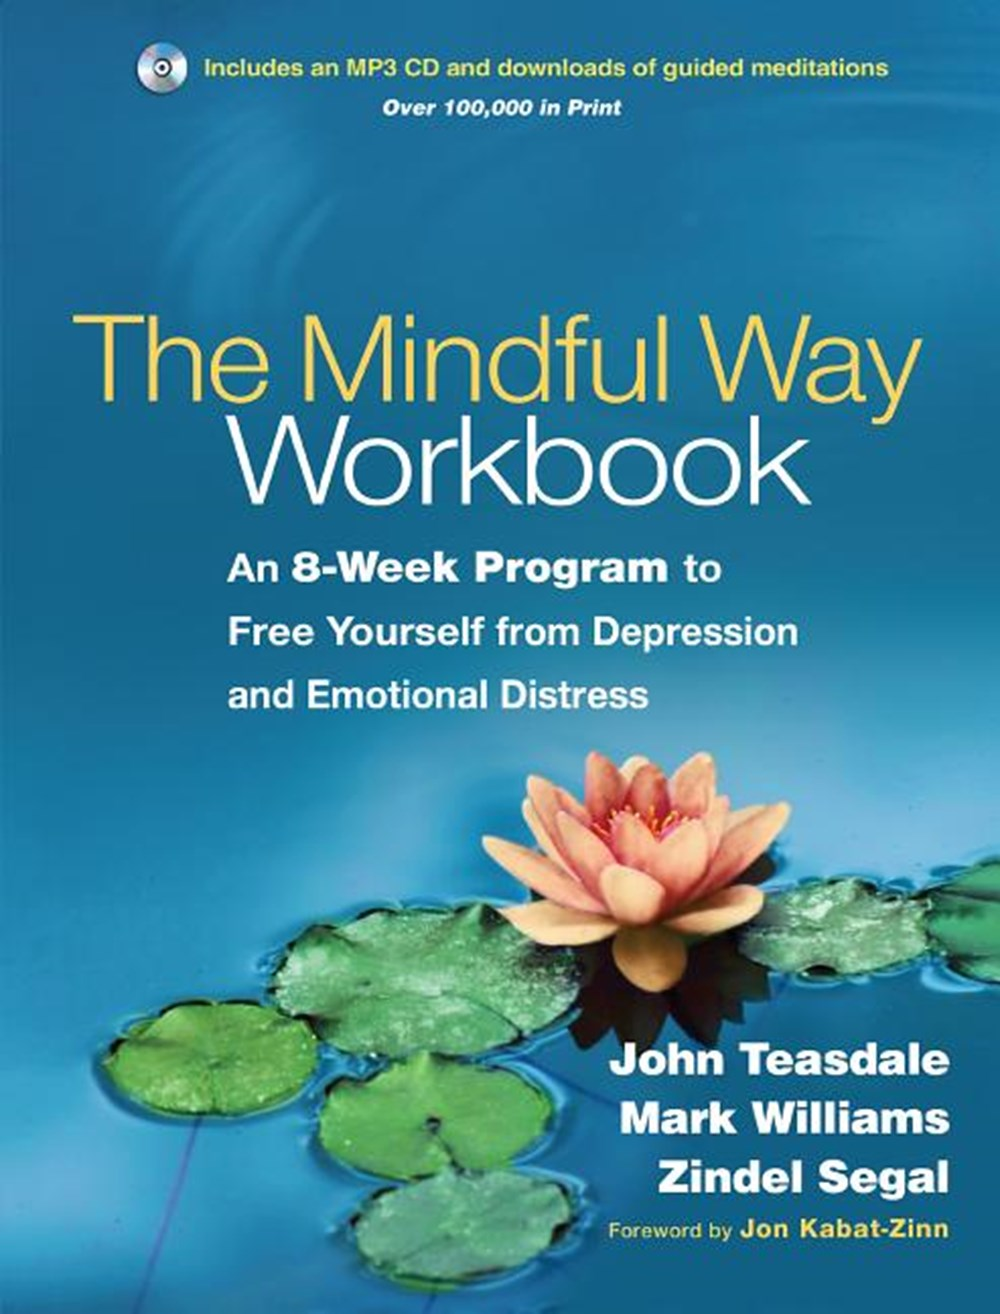 Mindful Way Workbook An 8-Week Program to Free Yourself from Depression and Emotional Distress [With